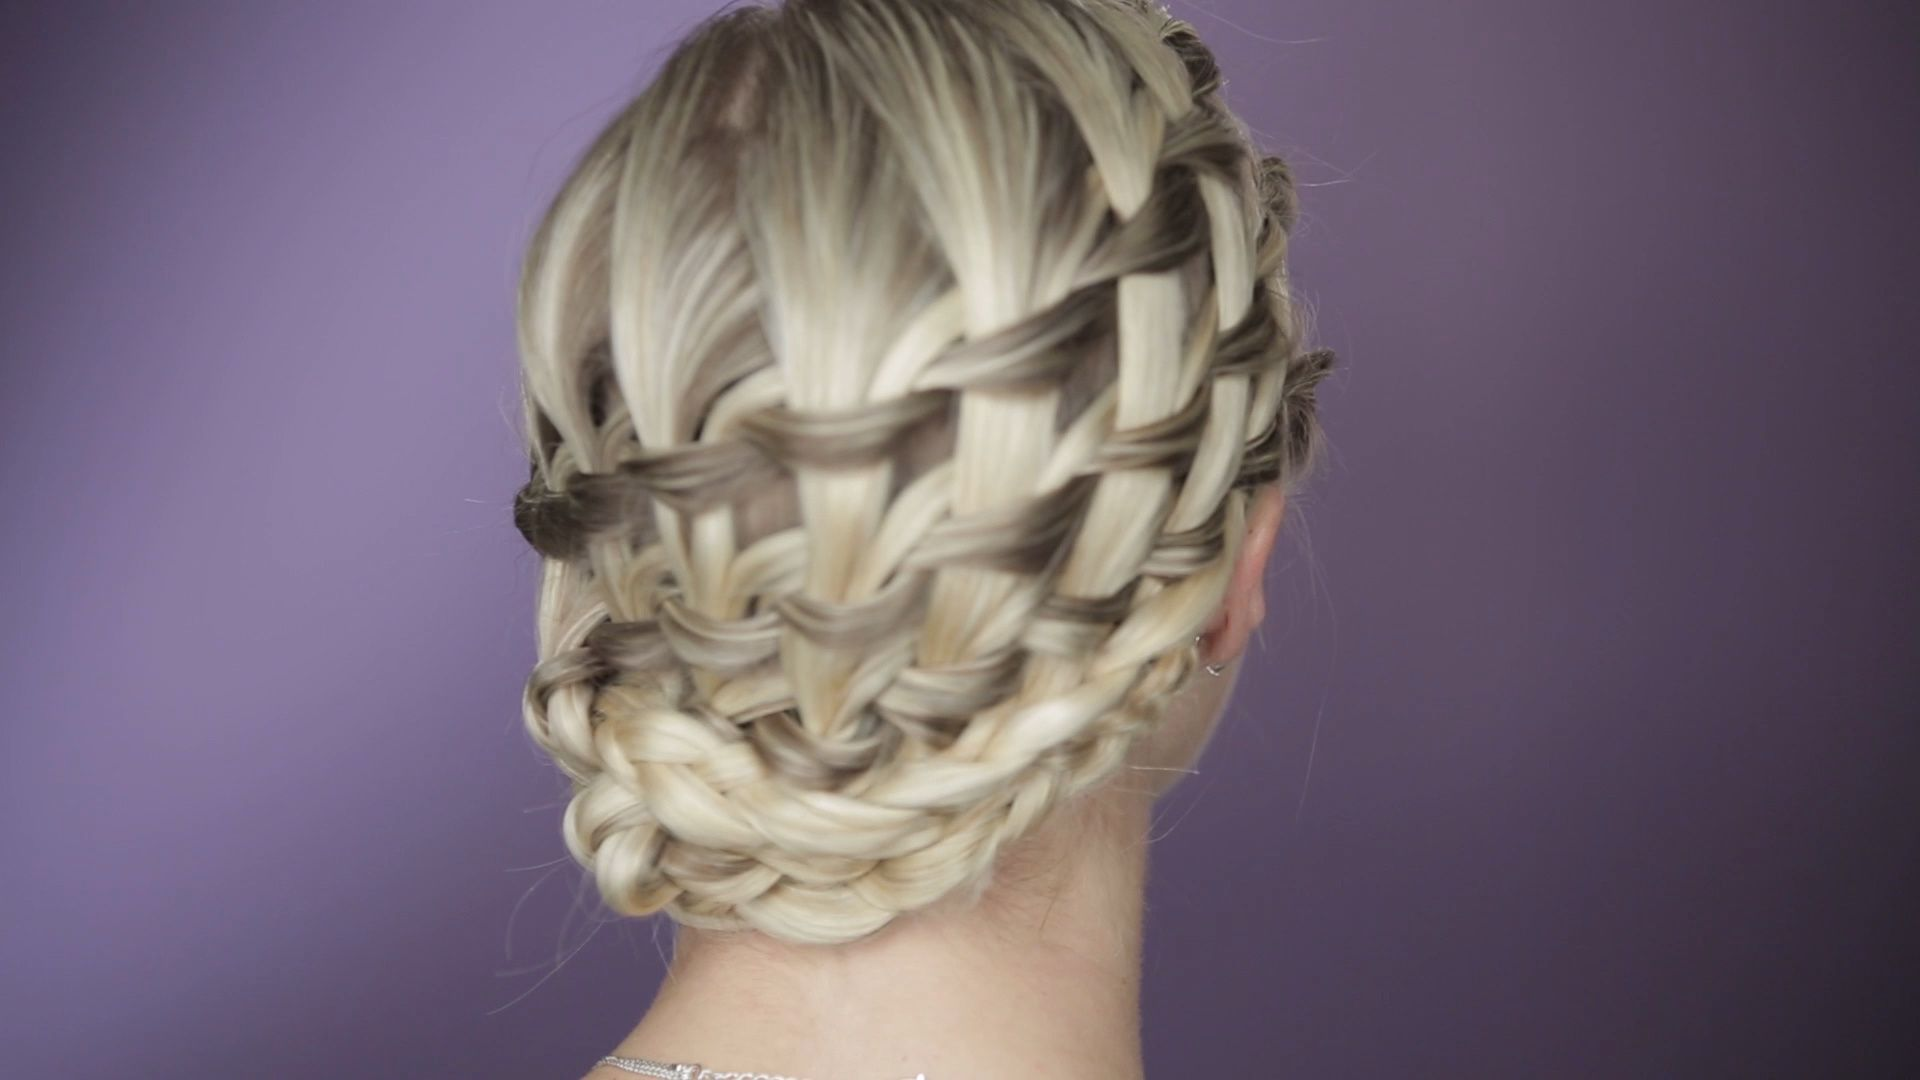 How to Do a Layered Waterfall Braid Celebrity hairstylist Sarah